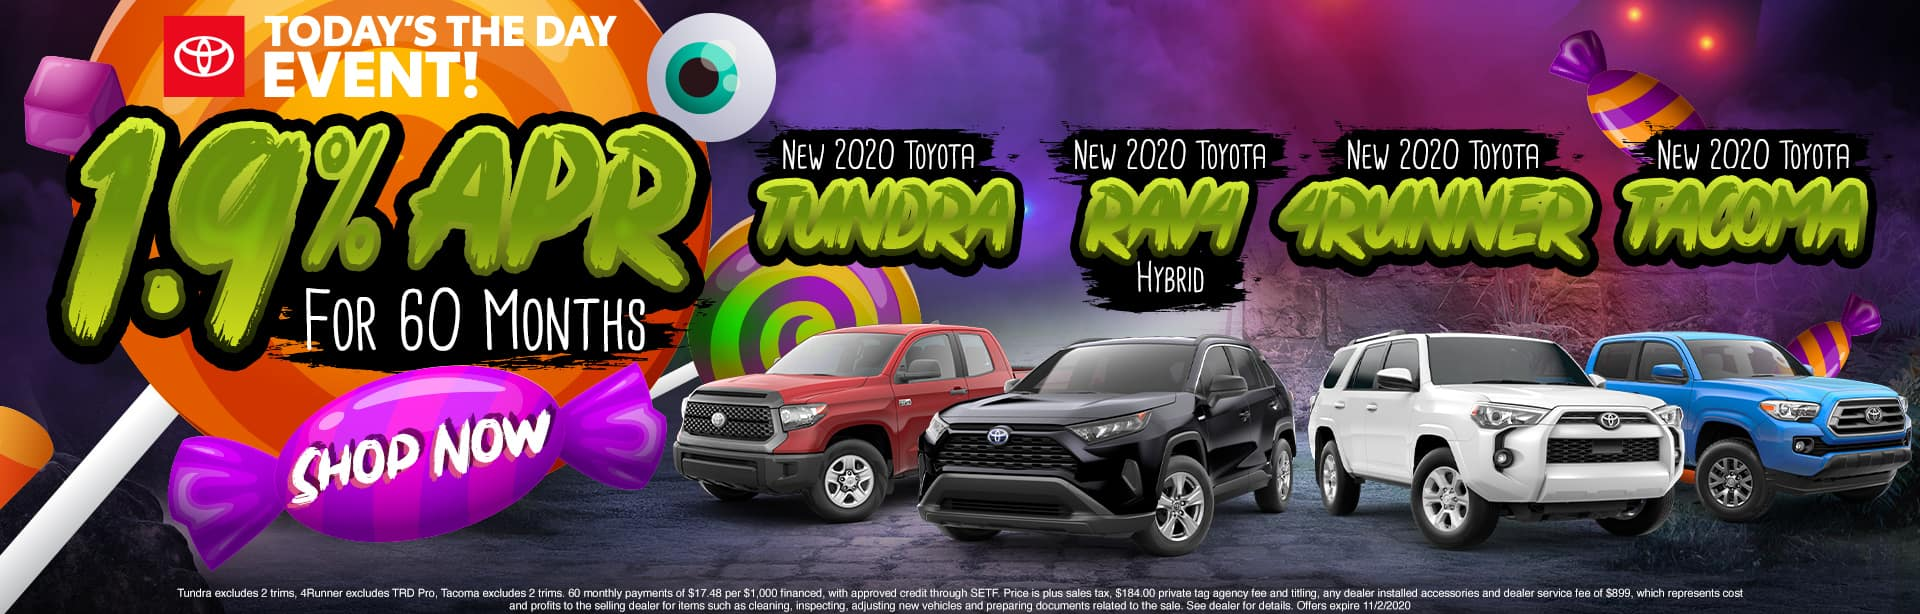 Today's The Day Event!   0% APR For 60 Months   New 2020 Toyota Tundra, New 2020 Toyota RAV4 Hybrid, New 2020 Toyota 4Runner, New 2020 Toyota Tacoma